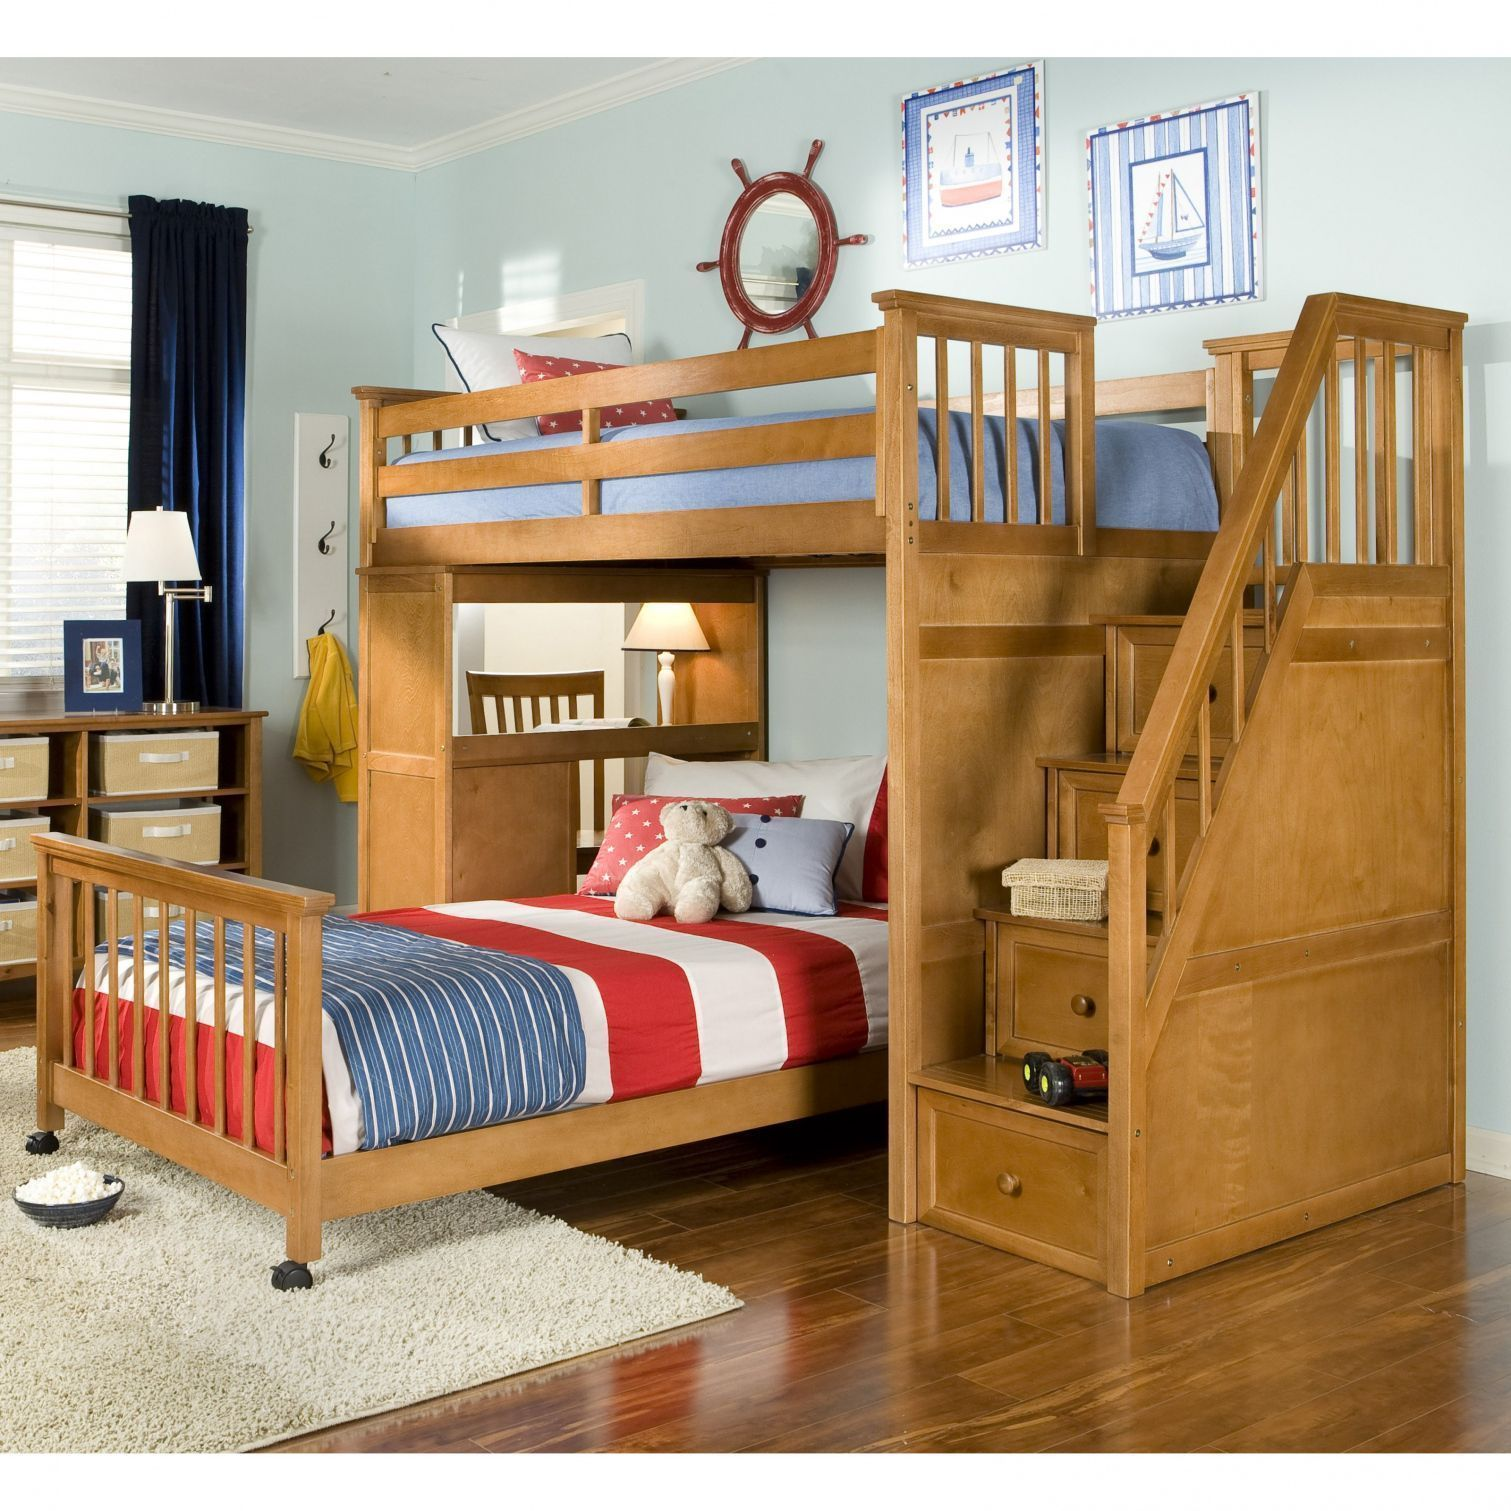 Unique bedroom interior design  unique bunk beds for kids  interior design bedroom ideas check